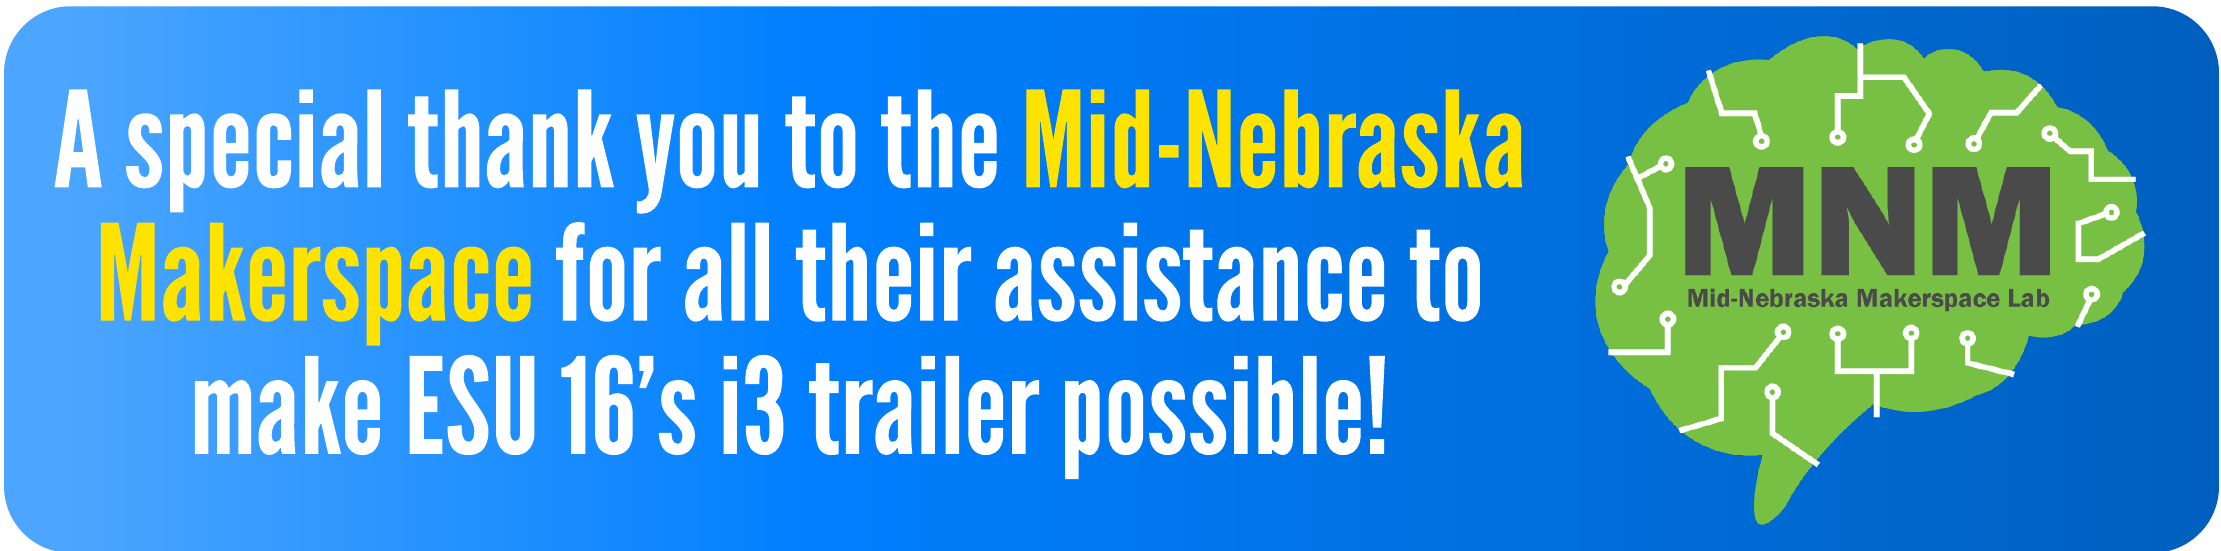 A special thank you to the Mid-Nebraska Makerspace for all their assistance to make ESU 16's i3 trailer possible!